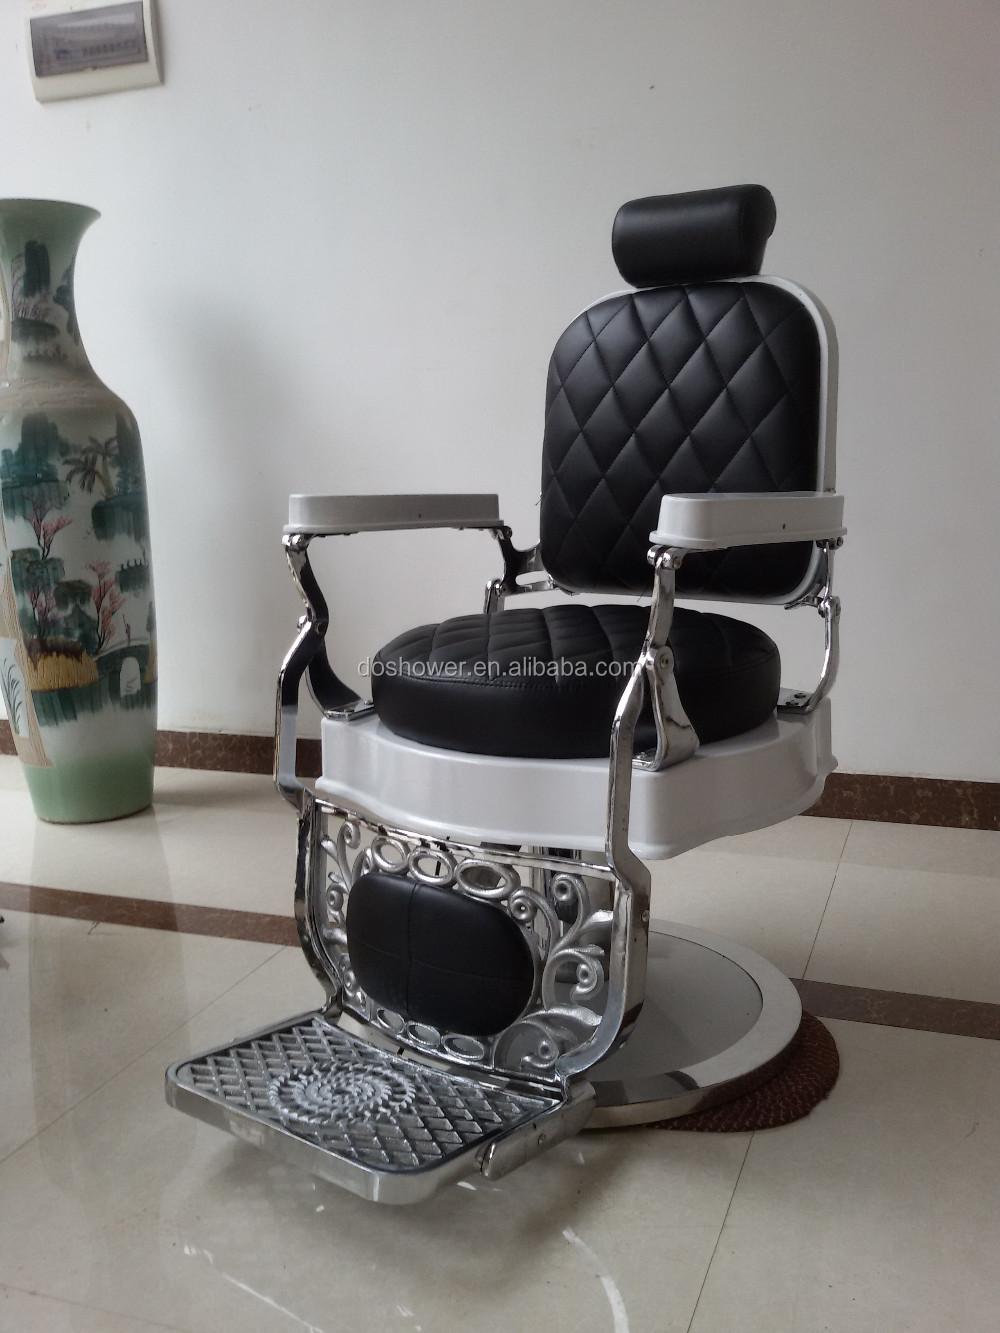 DS-T250 - Doshower Hairstylist Gold Styling Chair Vintage Salon Barber Chair